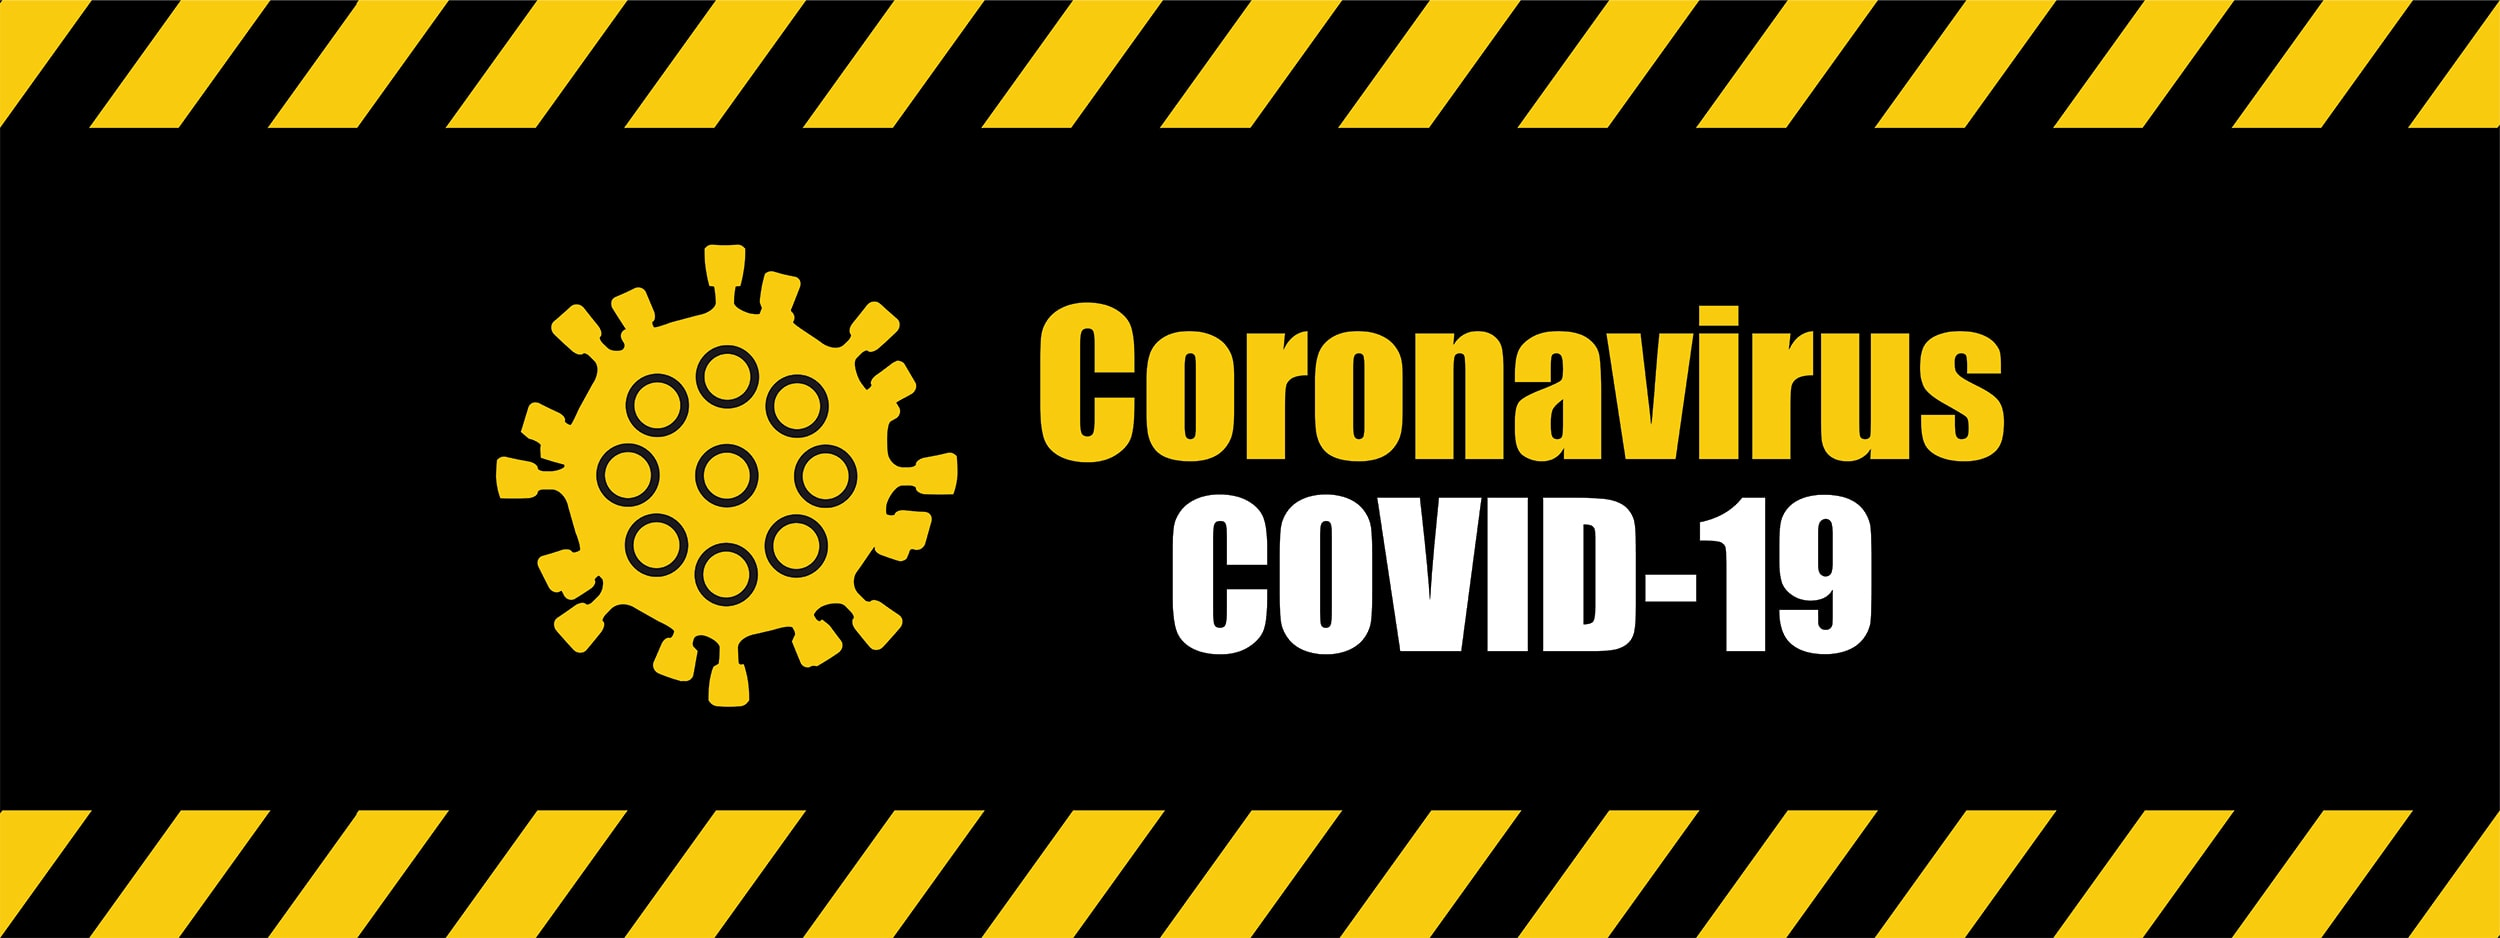 Coronavirus-Illustration-9.jpg